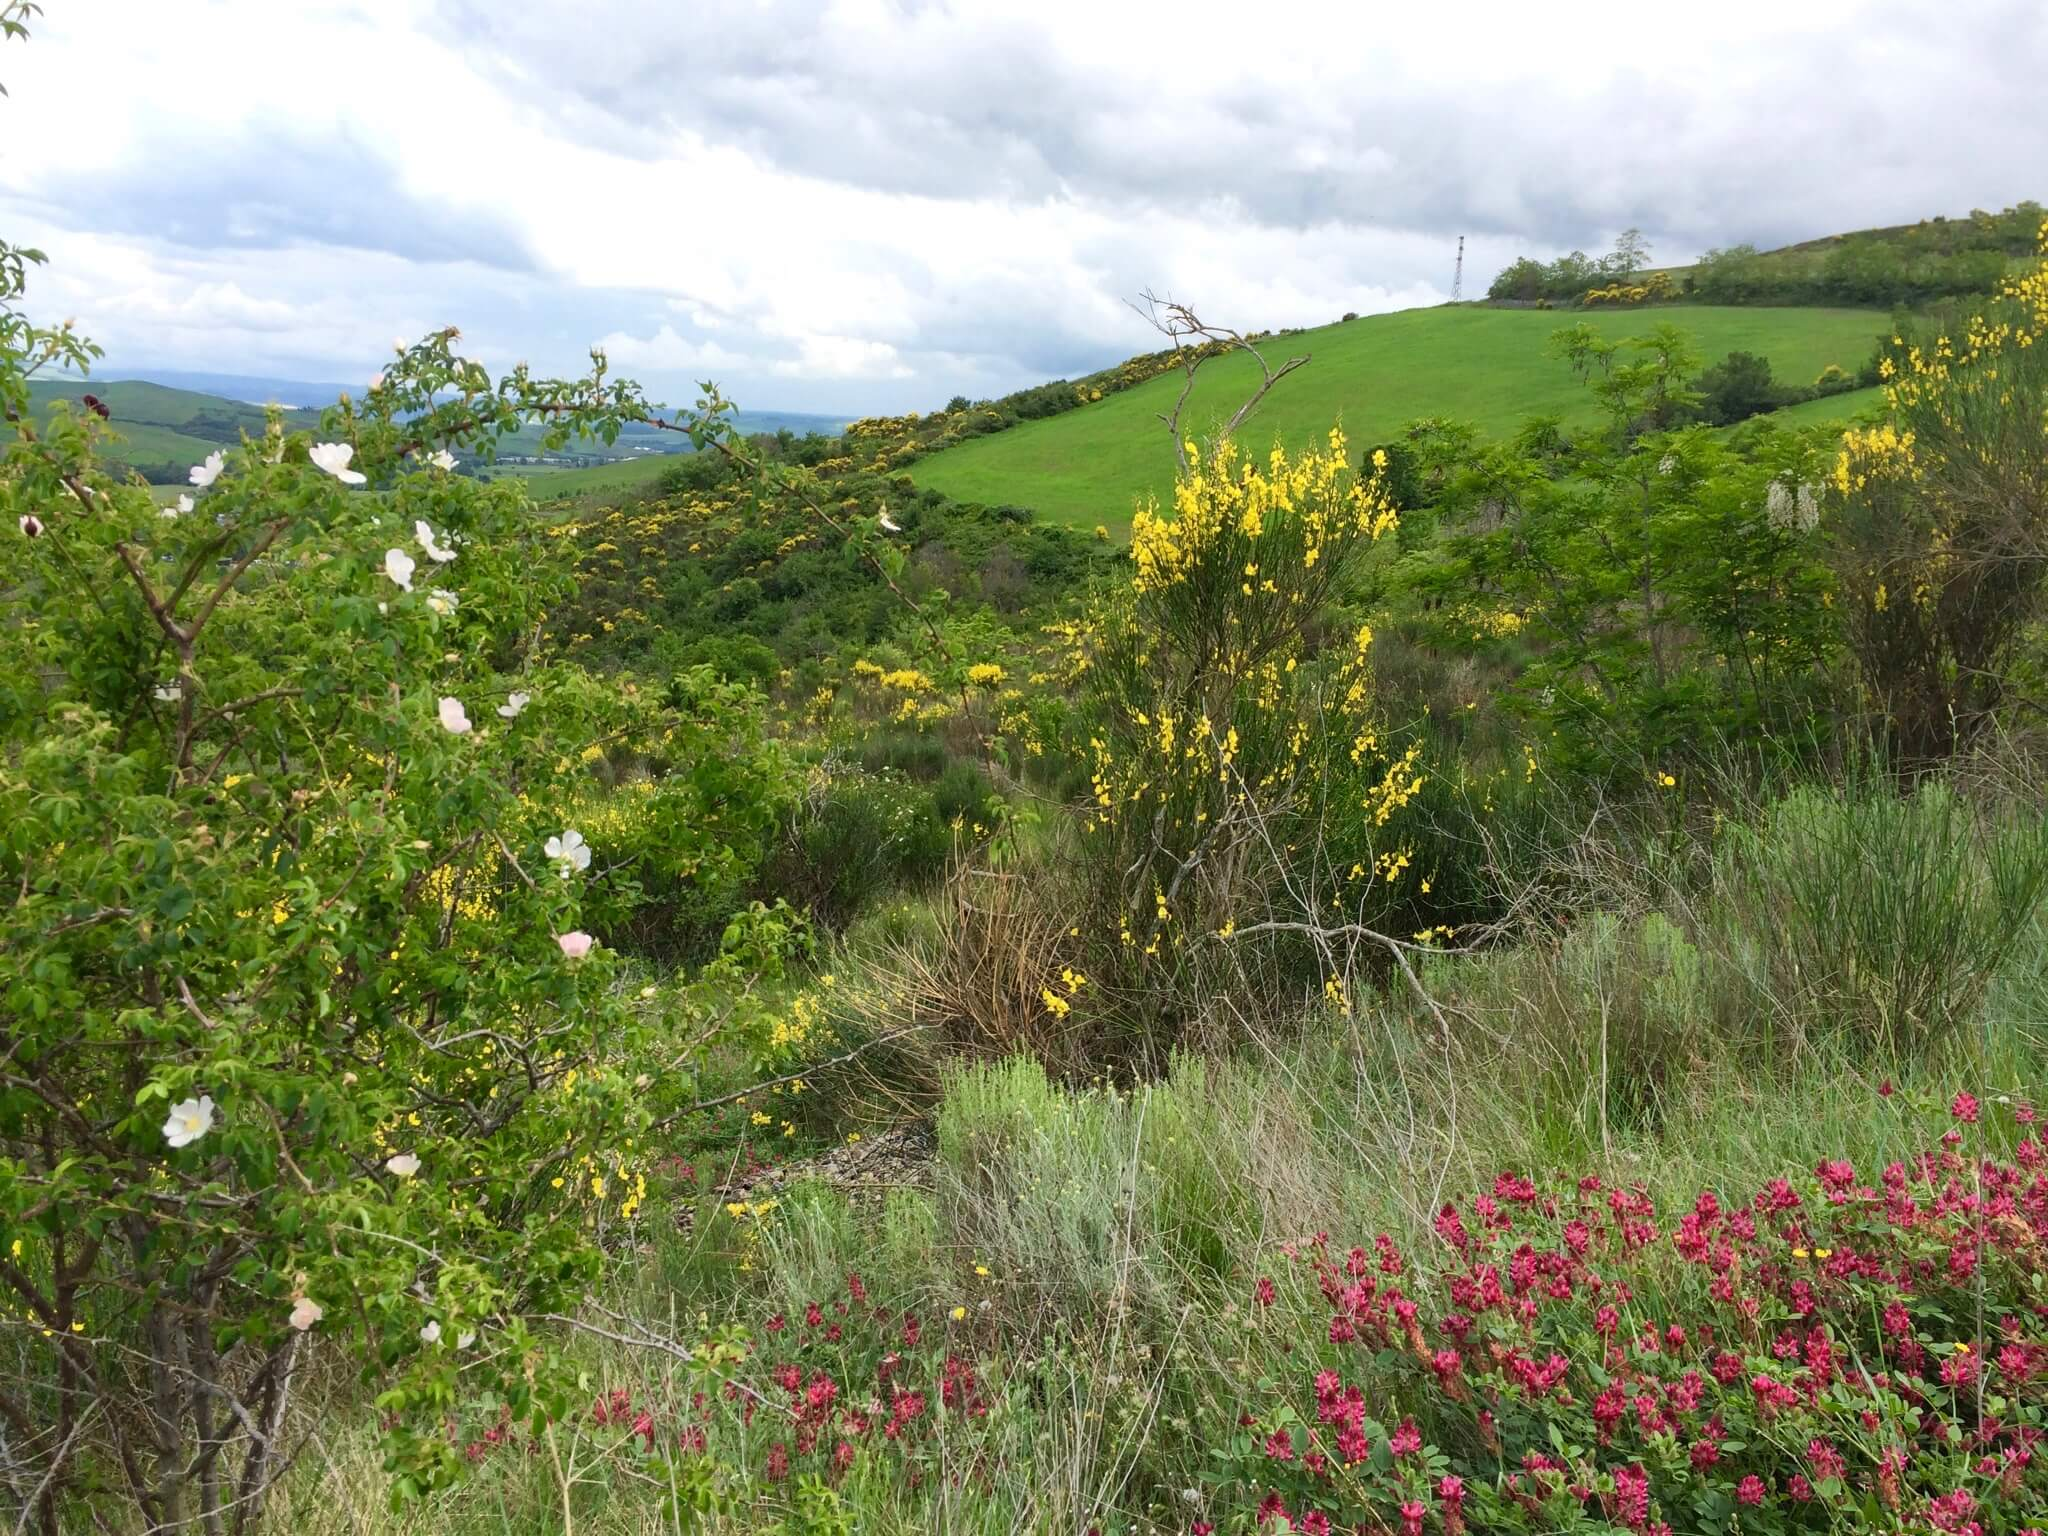 wildflower strewn meadow in Val d'Orcia